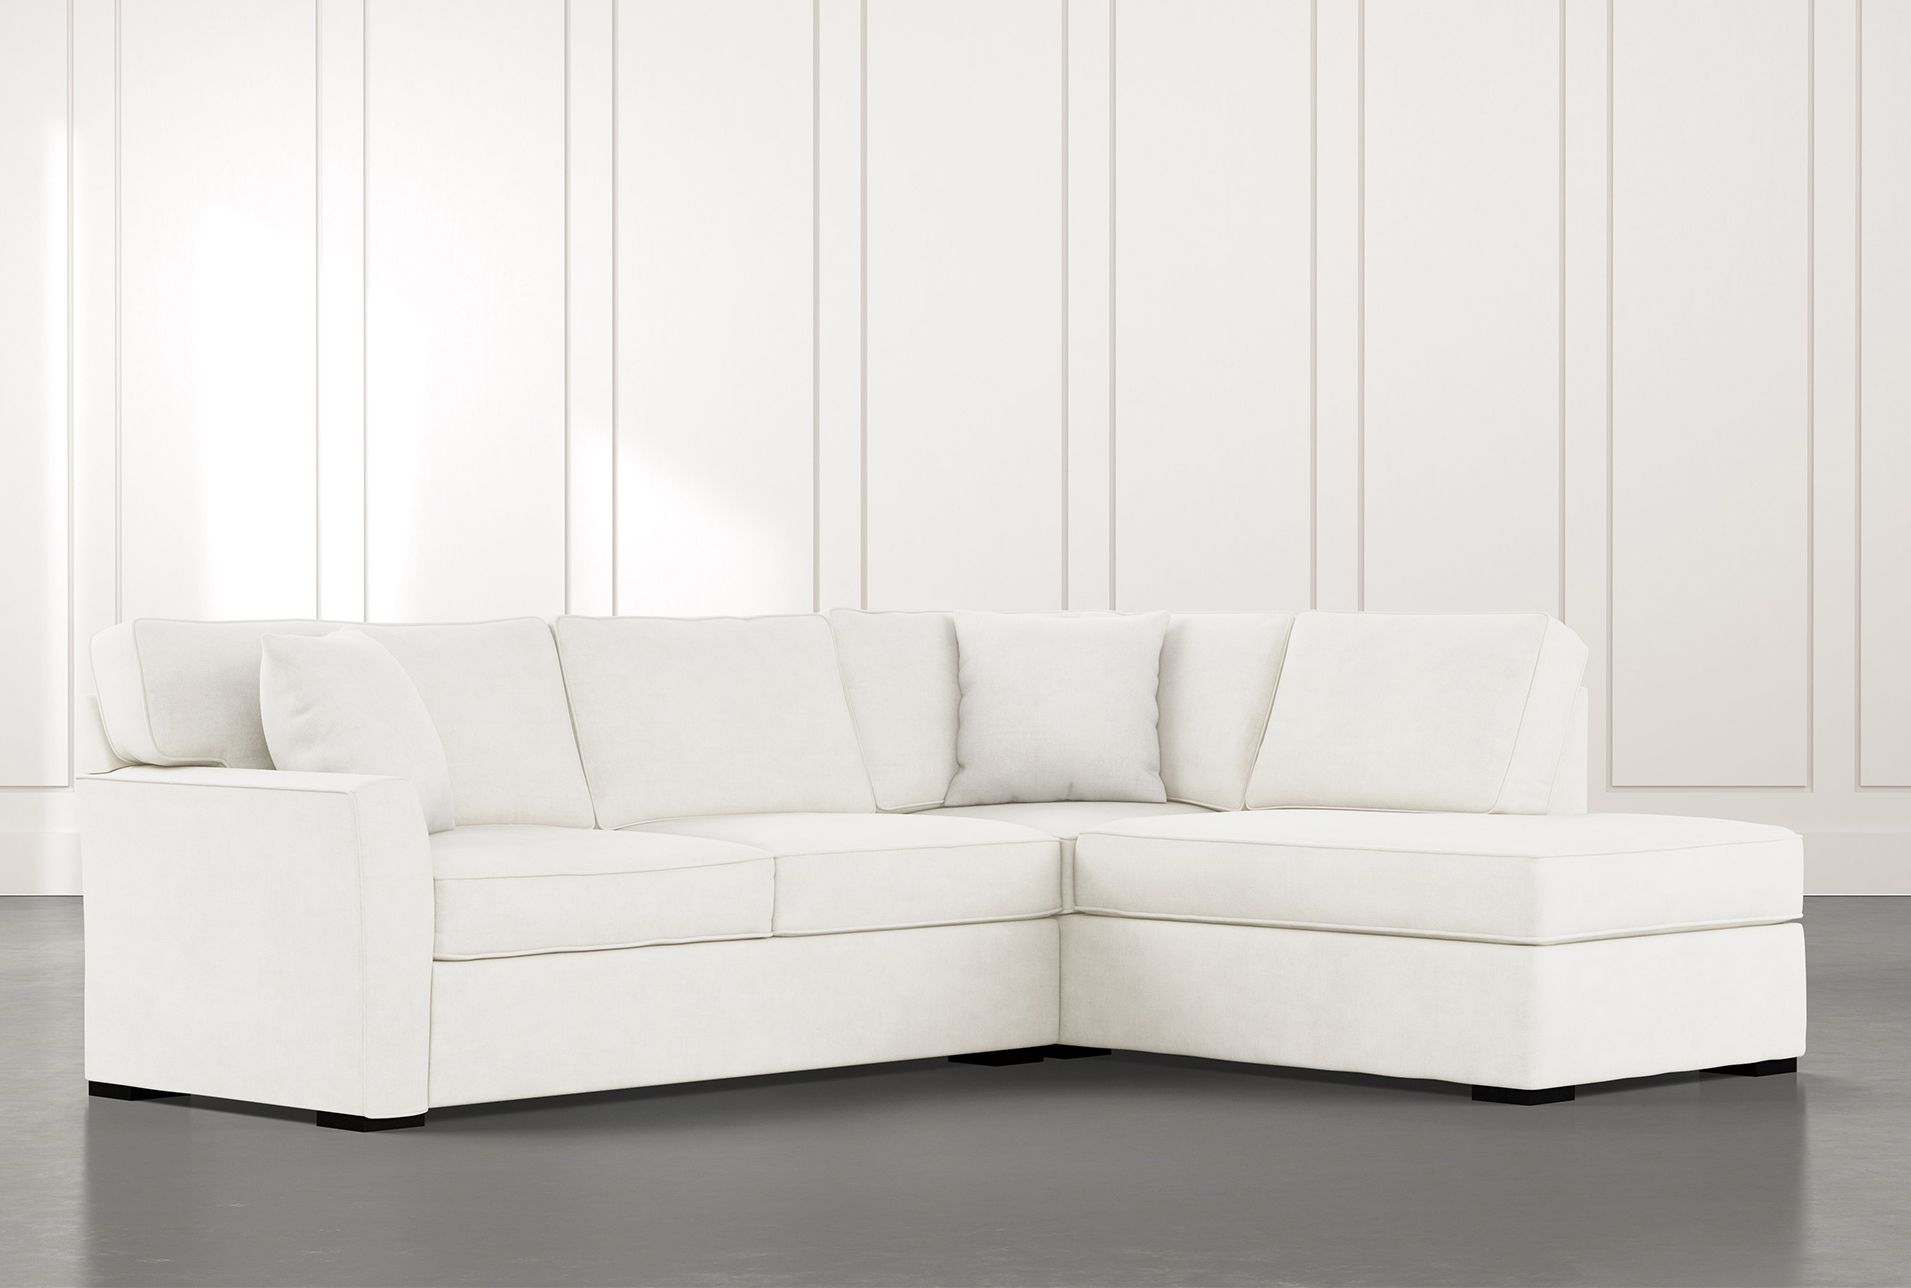 Aspen White 2 Piece Sleeper Sectional With Raf Chaise | 2 With Regard To Aspen 2 Piece Sleeper Sectionals With Laf Chaise (View 14 of 15)